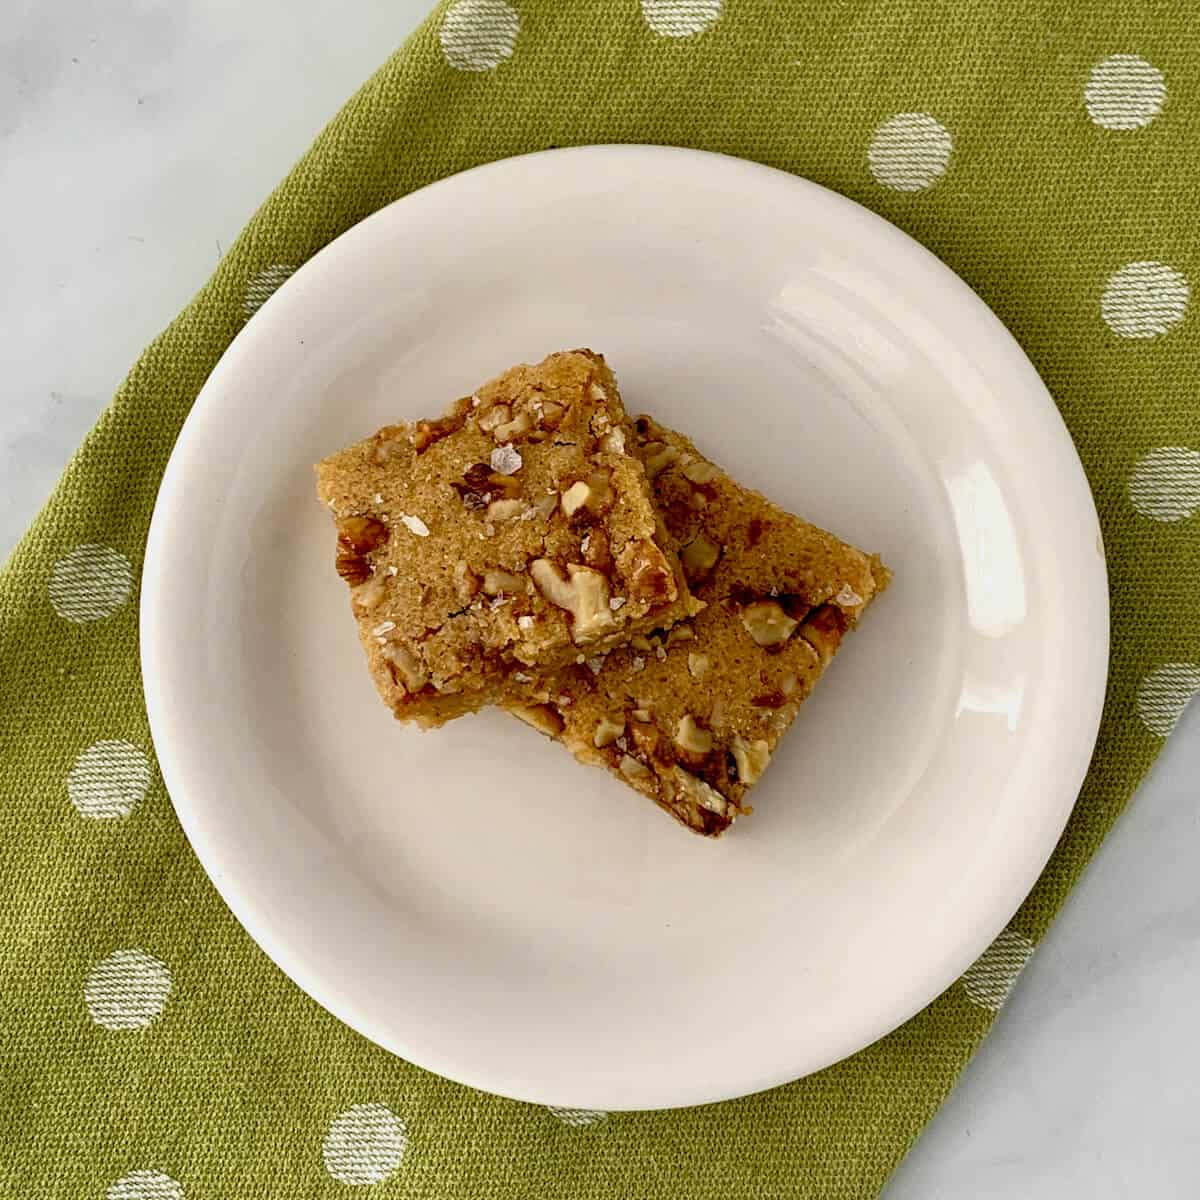 Stack of Maple Walnut Bourbon Blondies on a white plate sitting on a green towel with white polka dots from overhead.